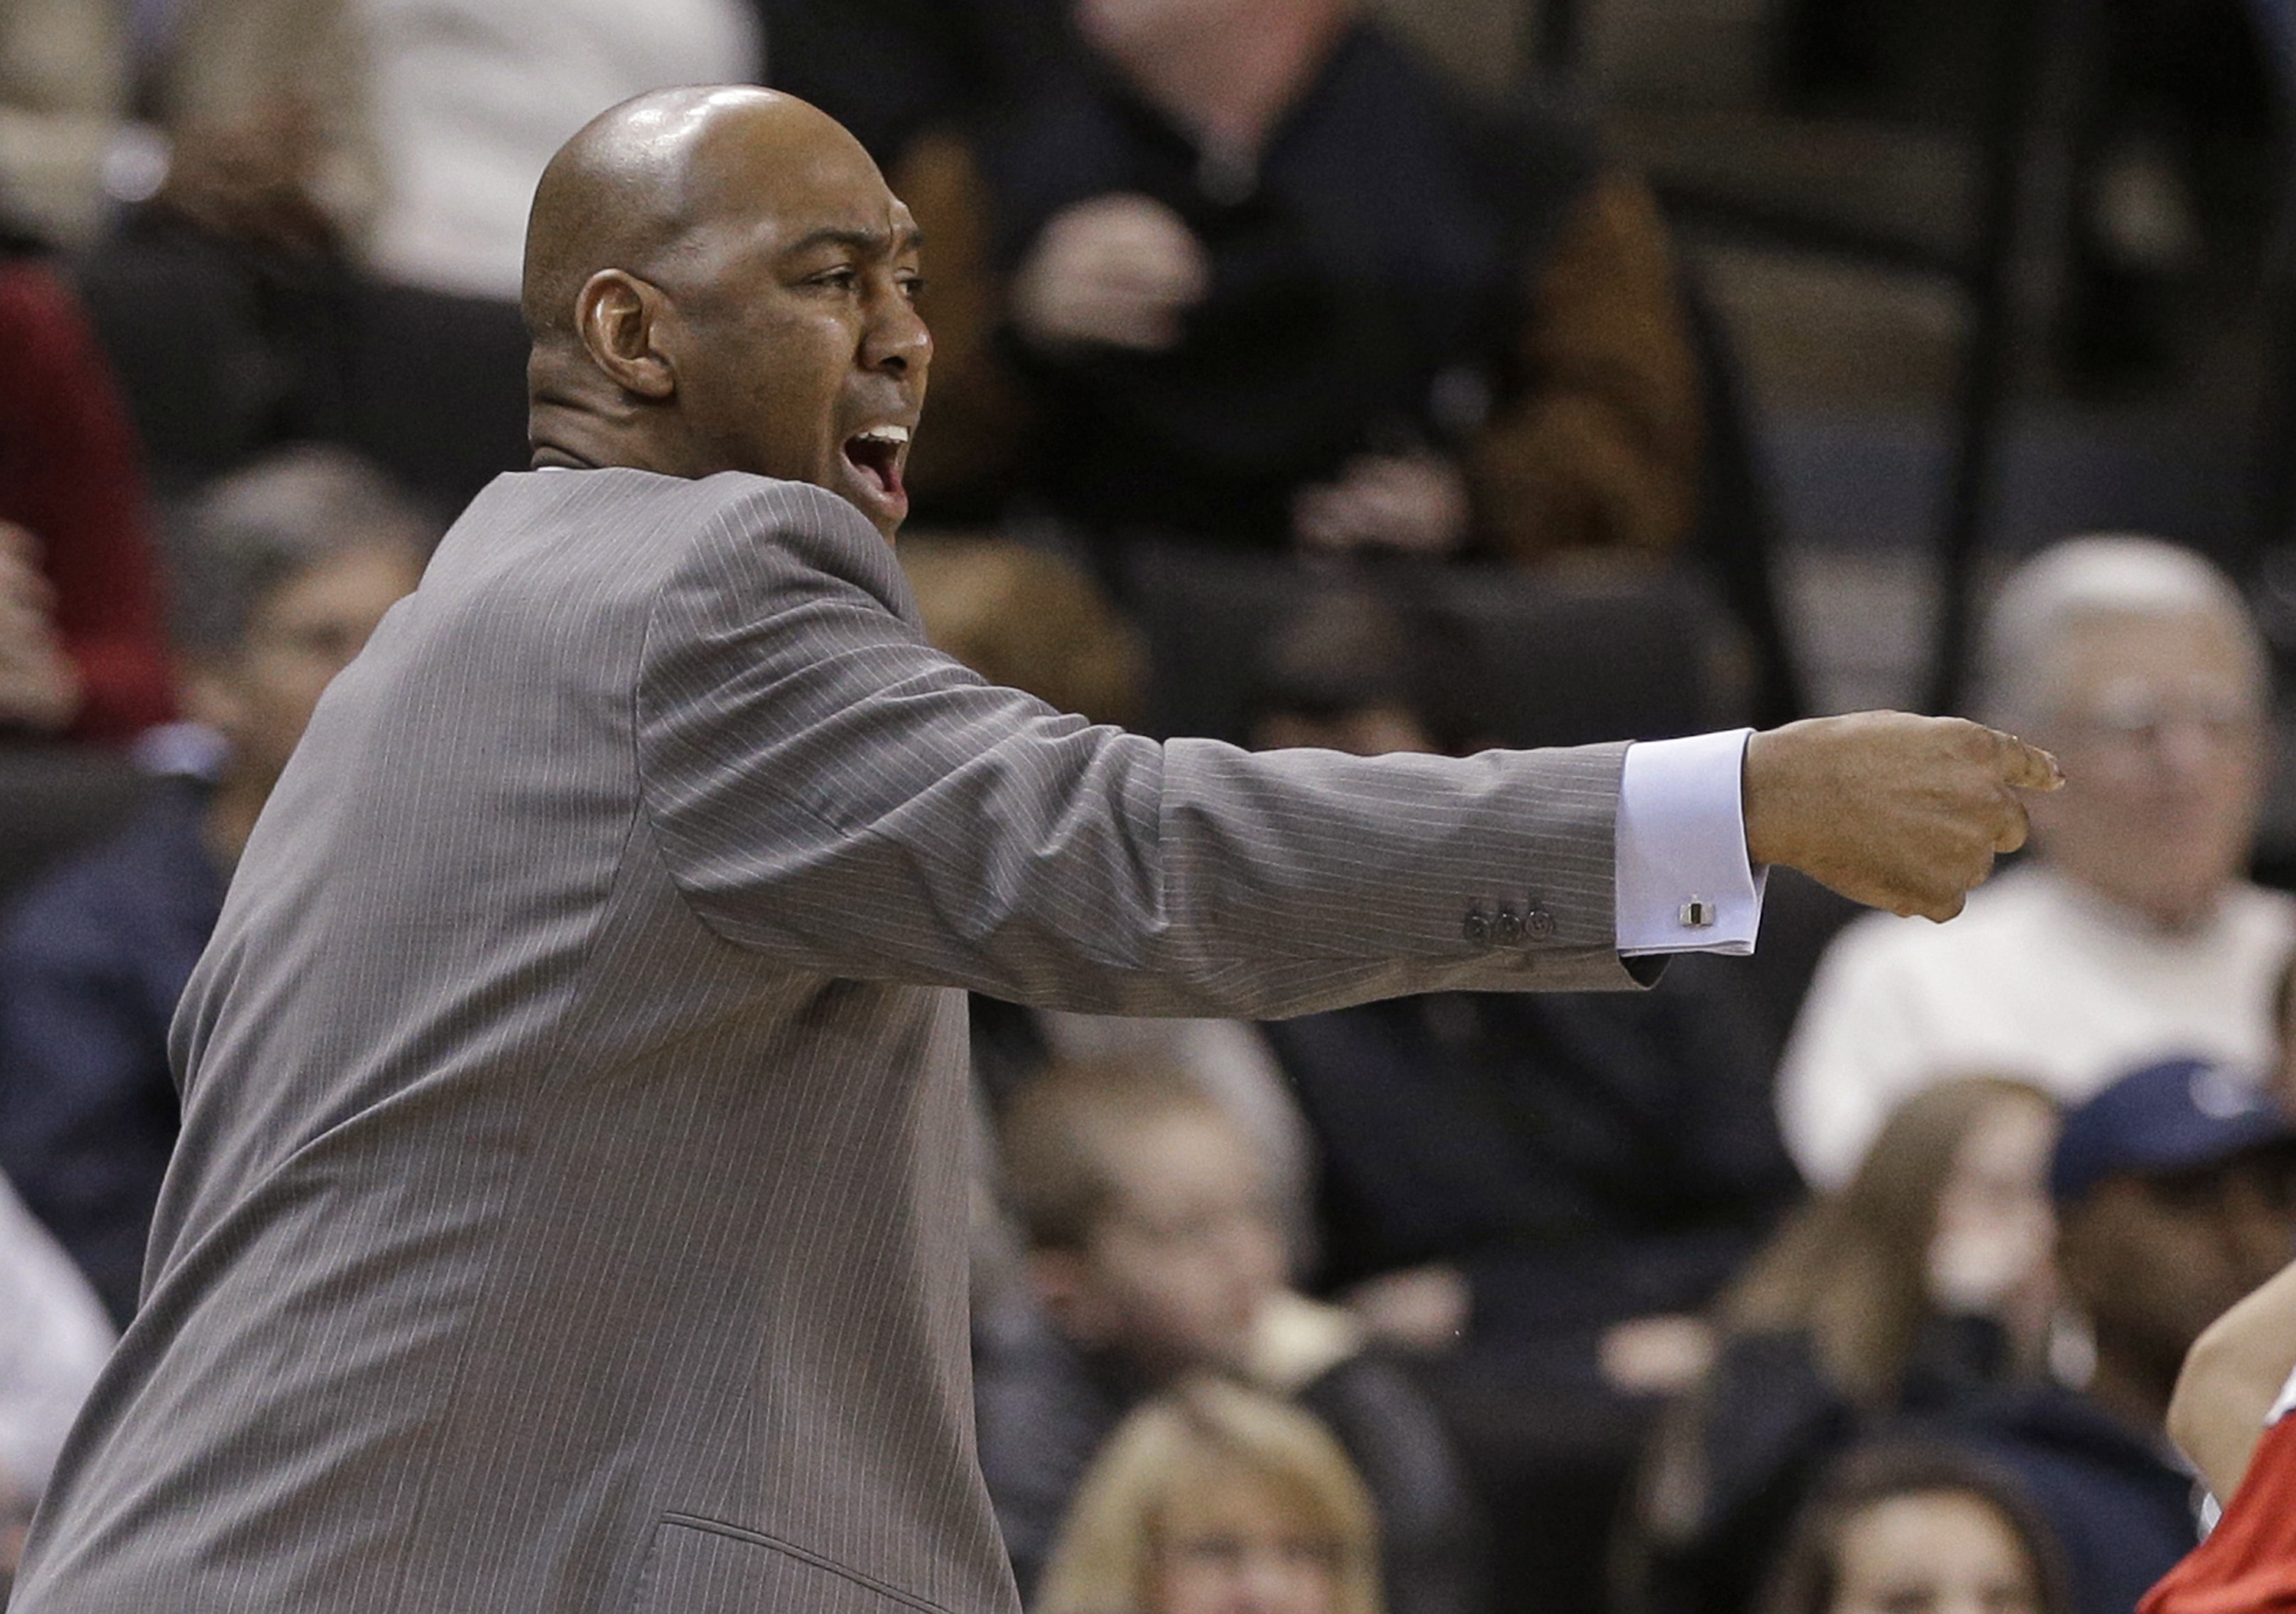 Wake Forest coach Danny Manning directs his team against North Carolina State during the first half of an NCAA college basketball game in Winston-Salem, N.C., Sunday, Jan. 10, 2016. (AP Photo/Chuck Burton)